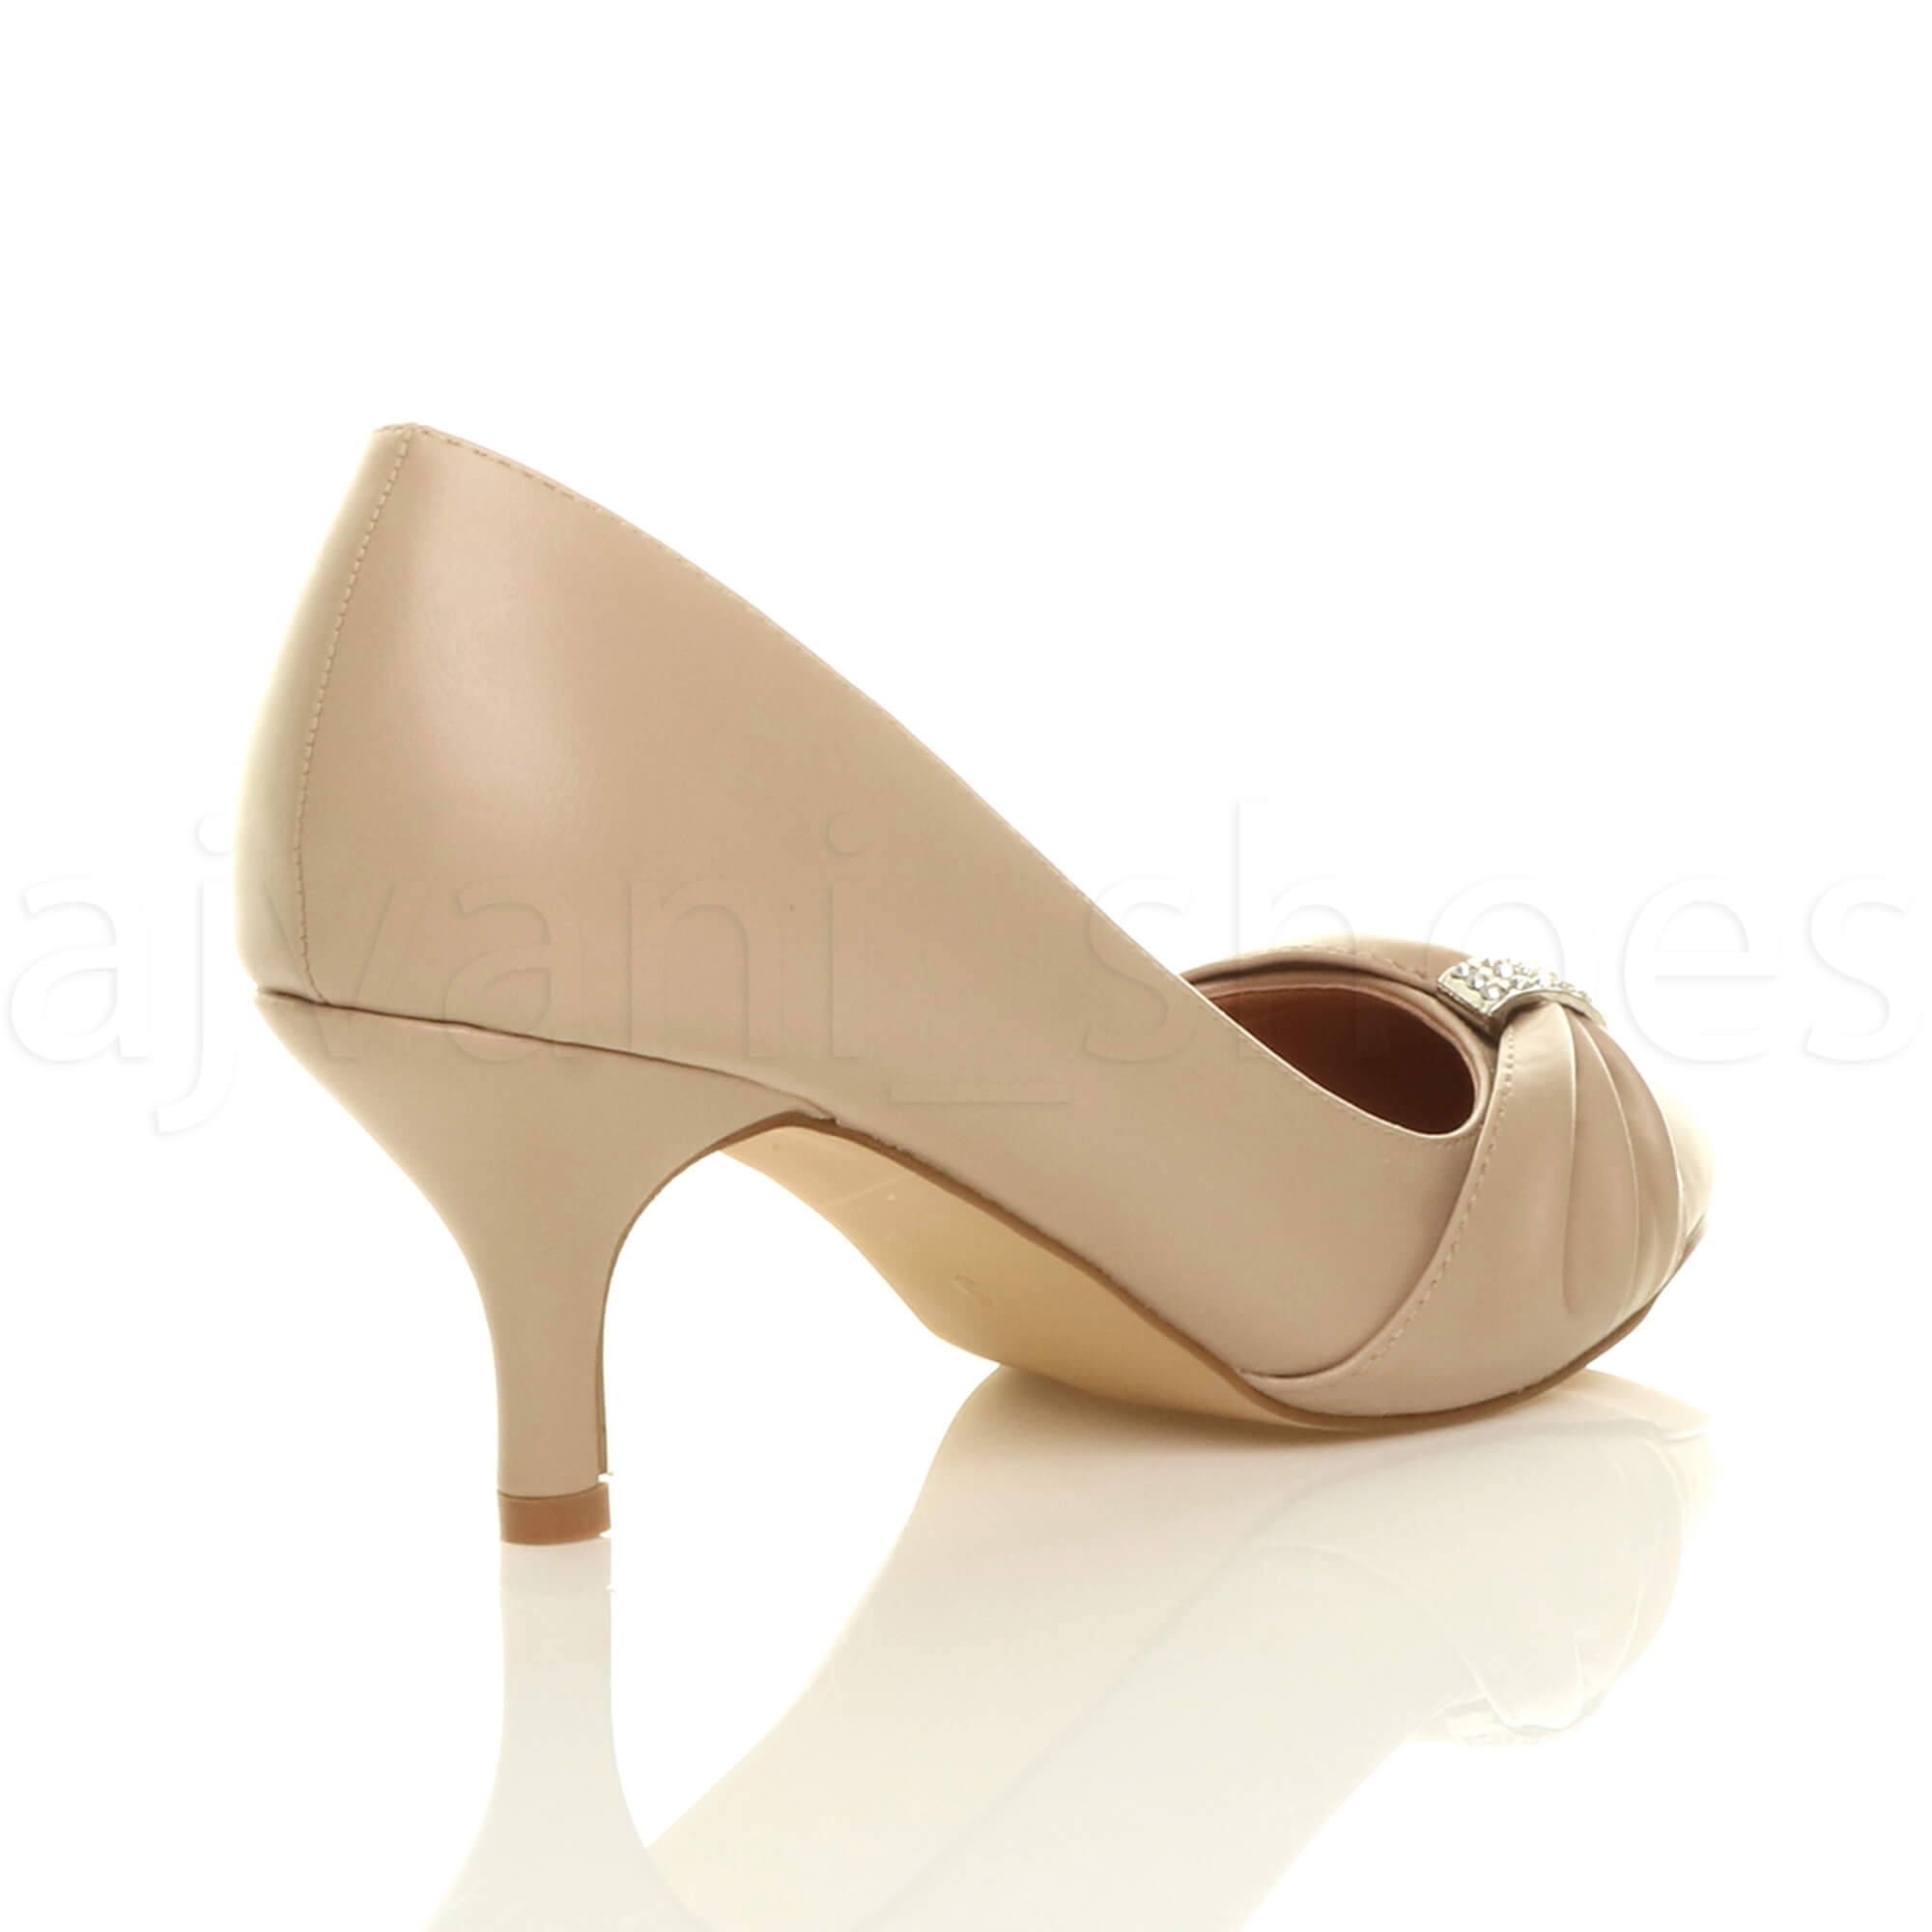 WOMENS-LADIES-MID-HEEL-RUCHED-DIAMANTE-WEDDING-PROM-EVENING-COURT-SHOES-SIZE thumbnail 61